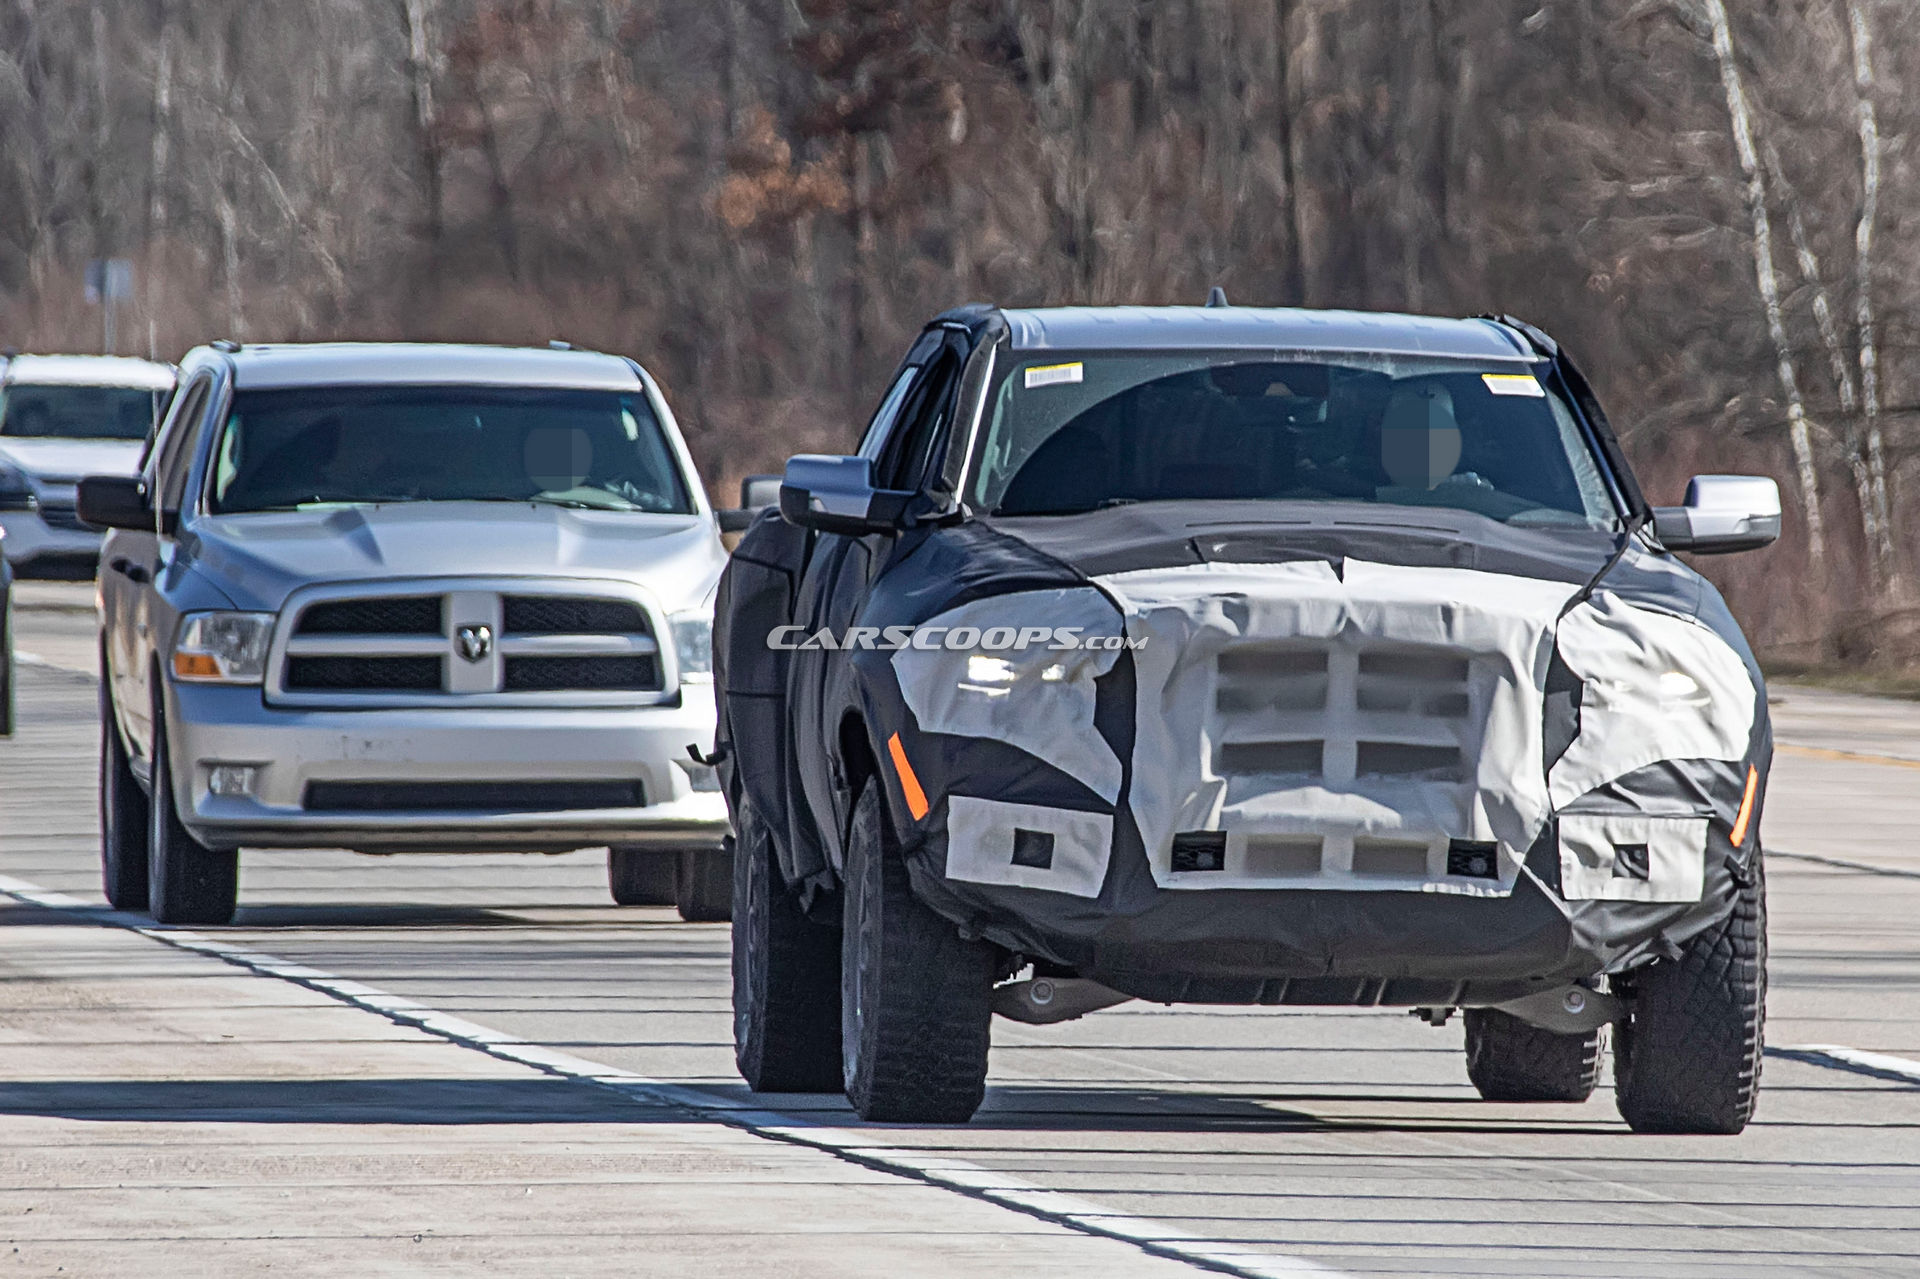 Ram has announced the reveal date of the long-anticipated, performance-packed TRX version of its Rebel truck: Monday, August 17, 2020.